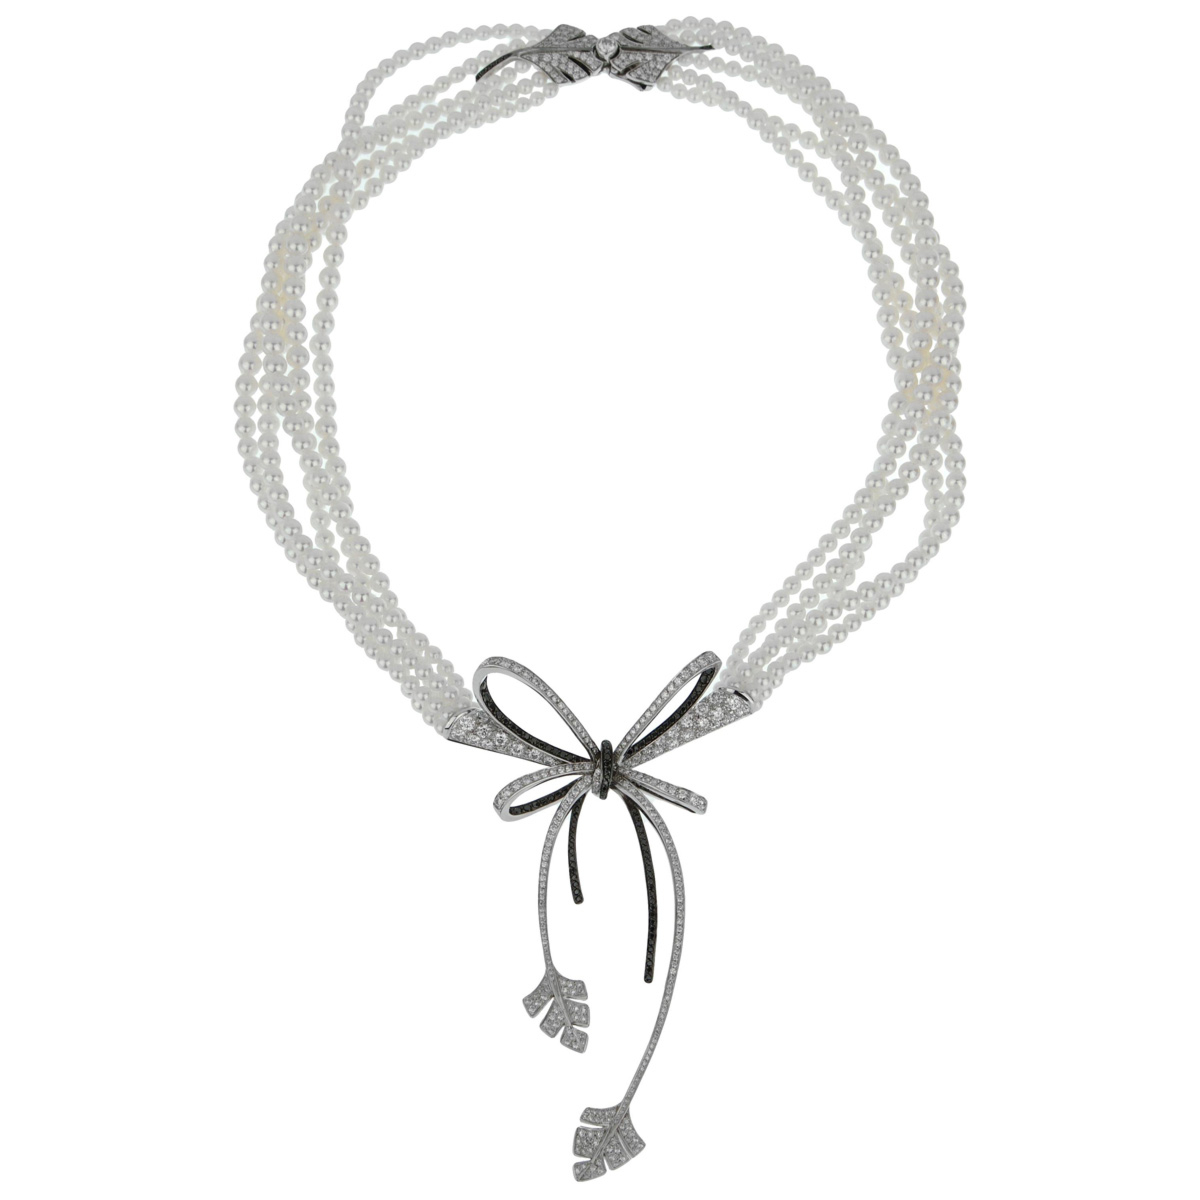 Chanel High Jewelry Diamond Pearl White Gold Necklace - Chanel Jewelry